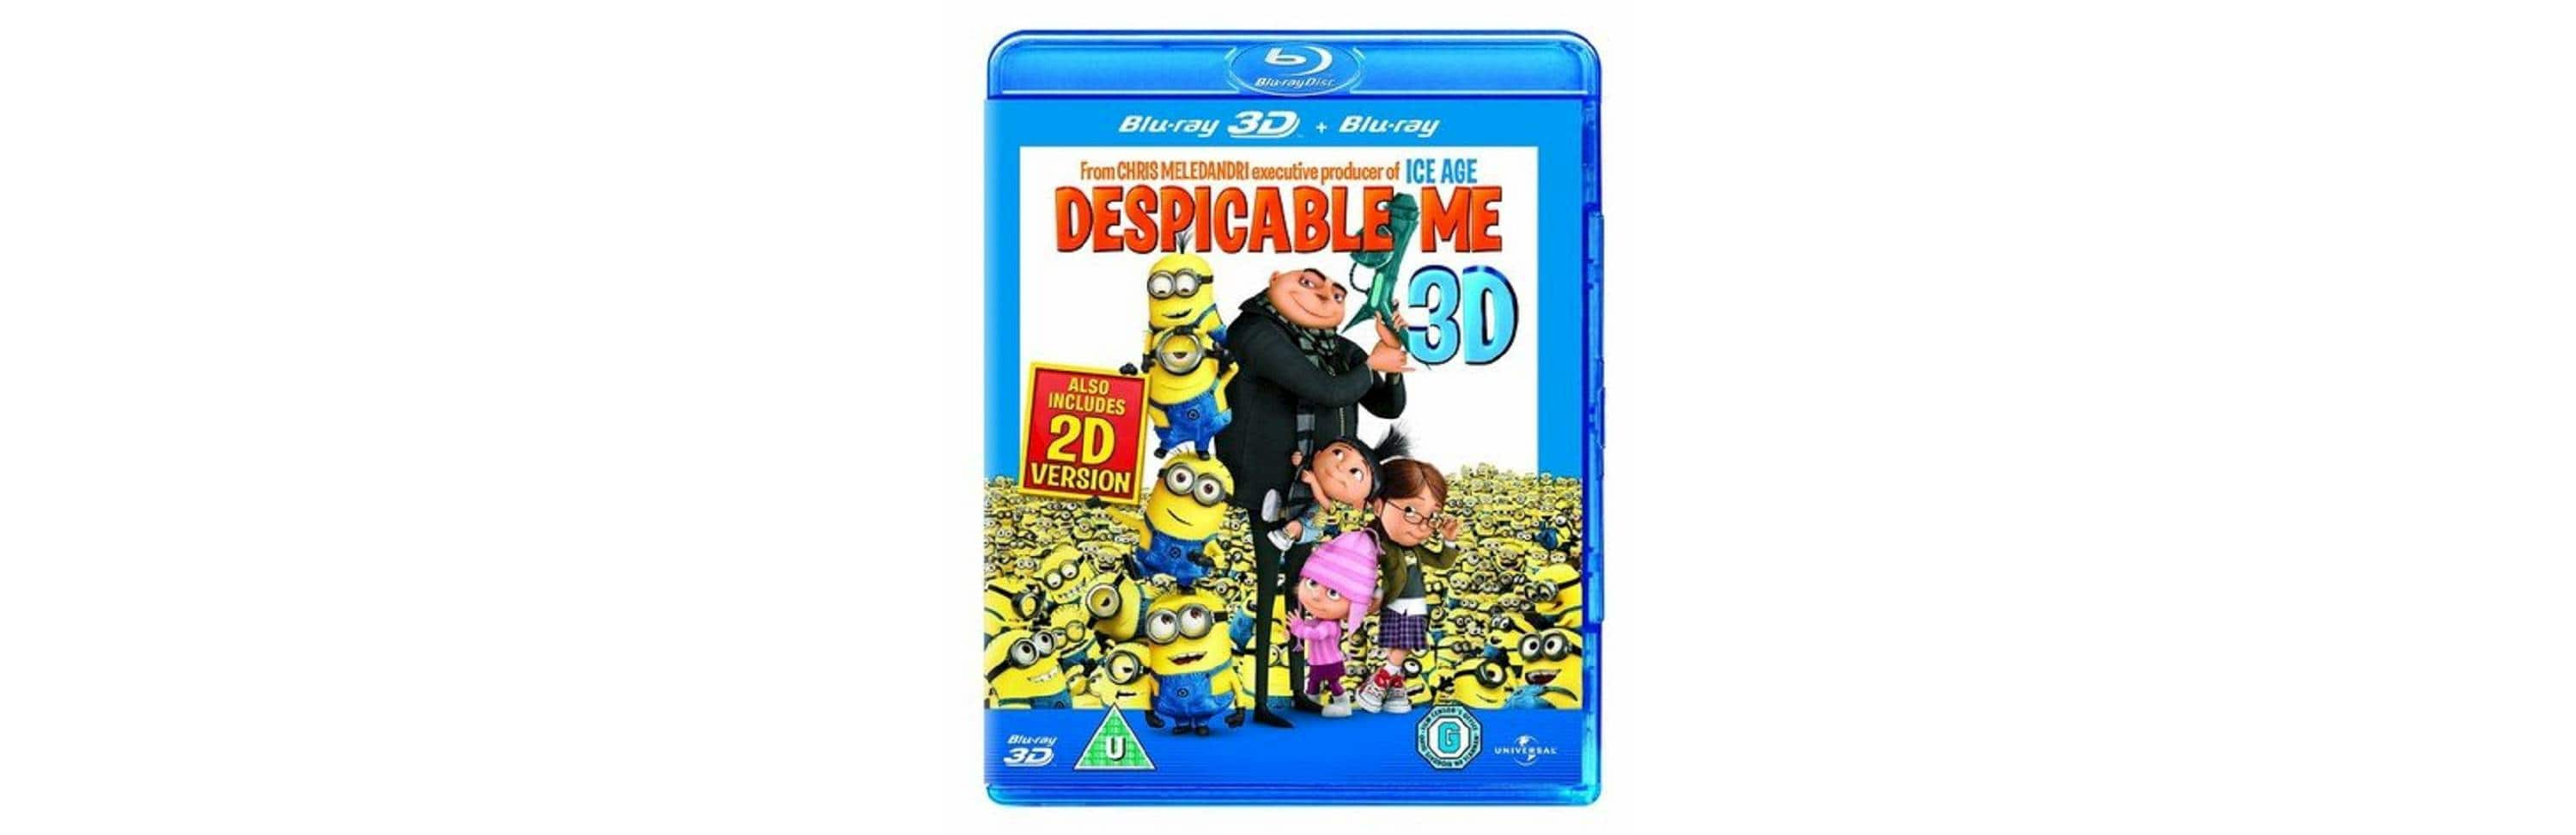 Target in store only - Despicable Me 2 3D Blu ray $10.00 + tax